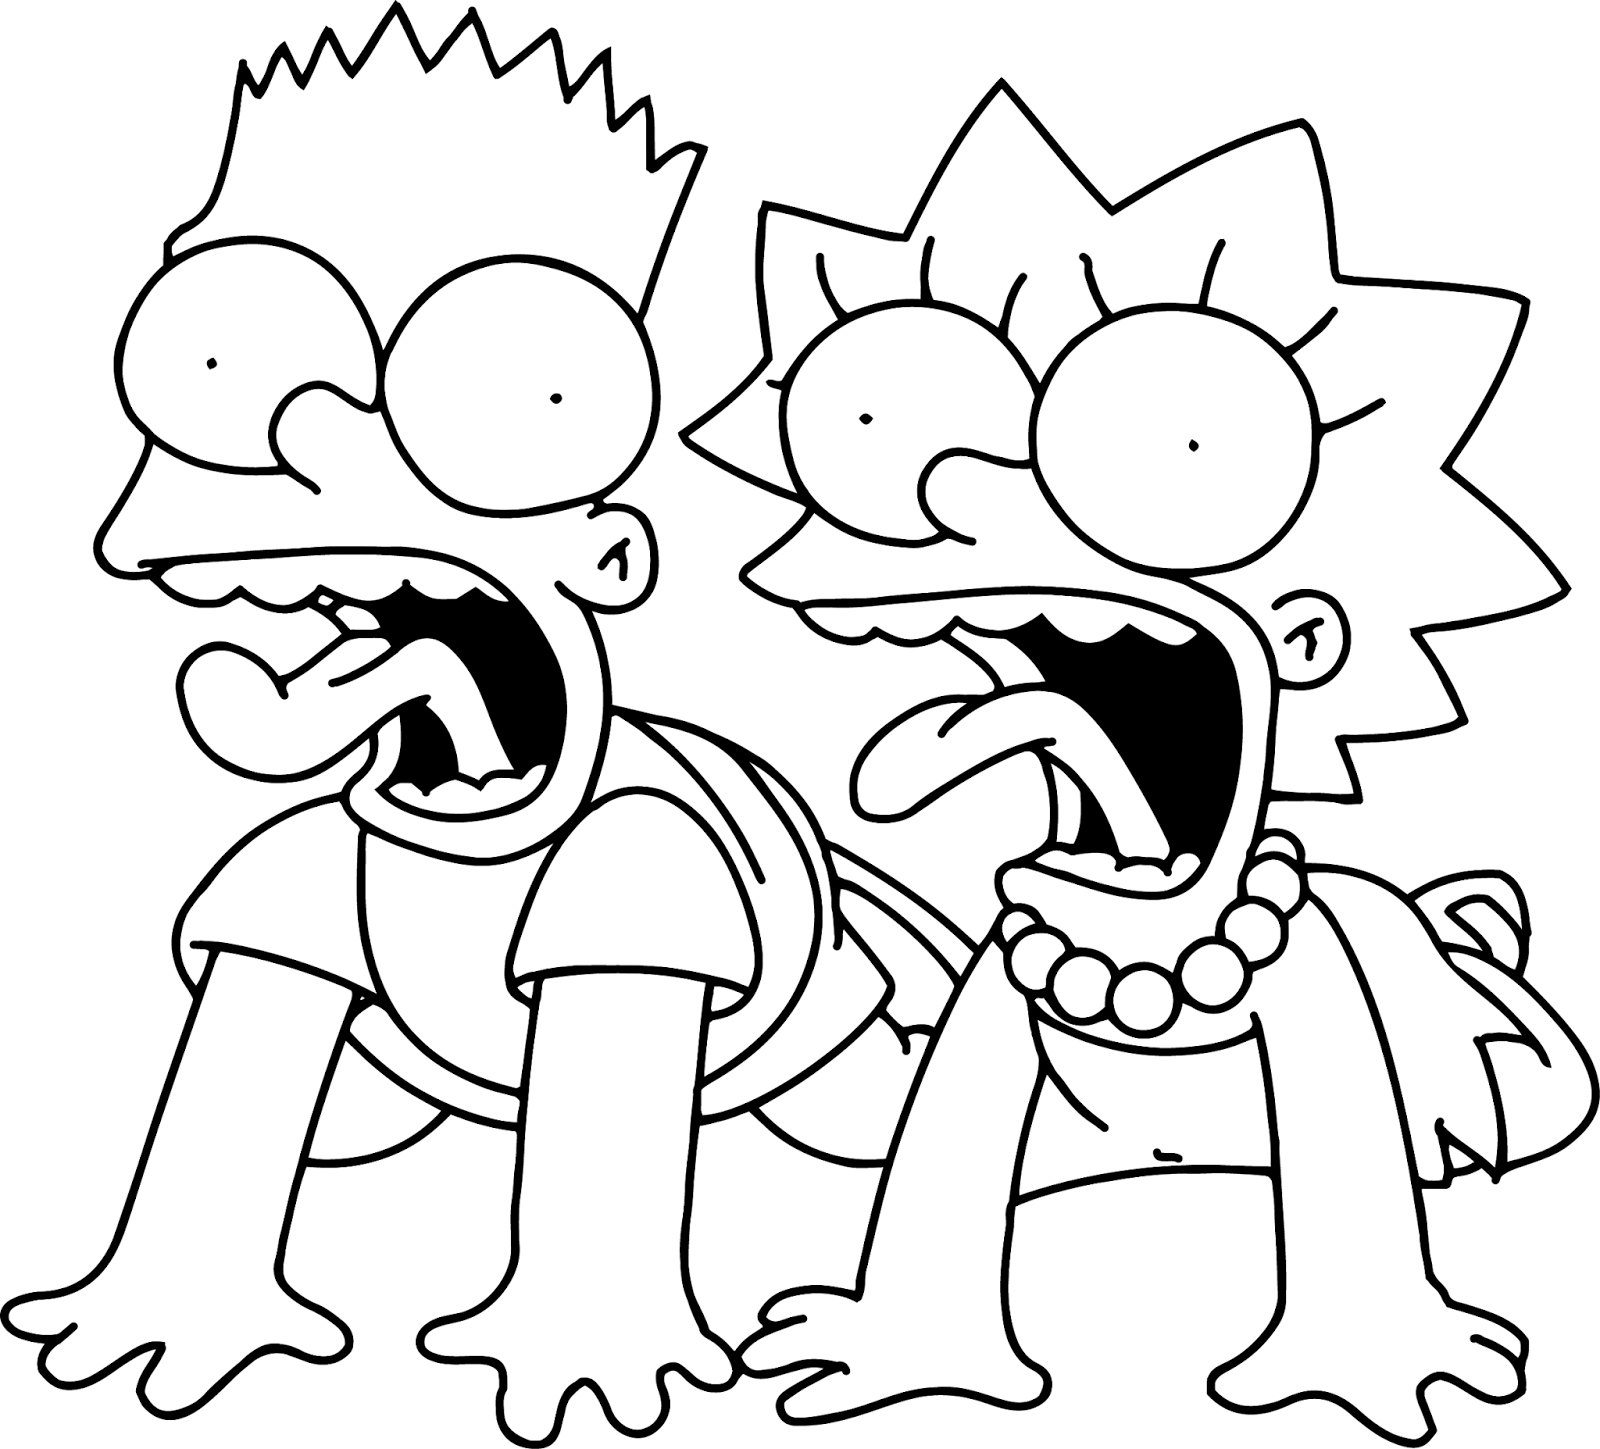 coloring simpsons free printable simpsons coloring pages for kids simpsons coloring